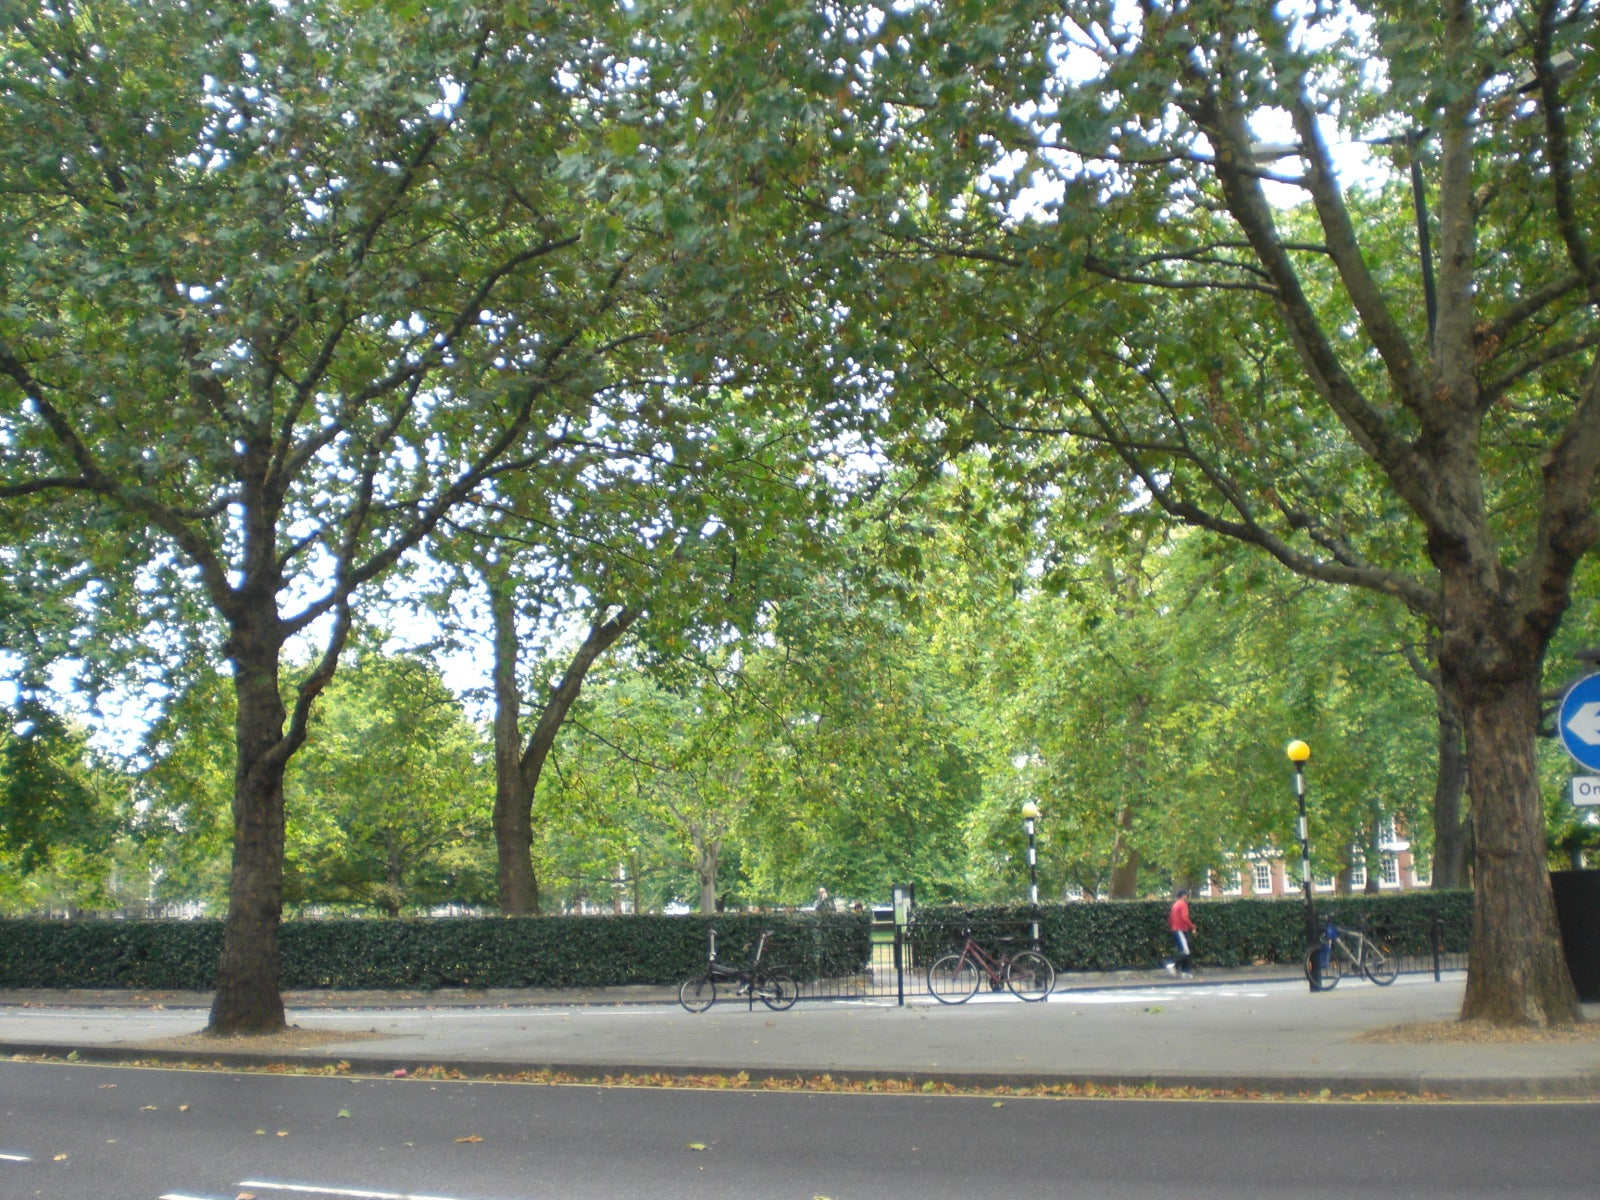 Via Grosvenor Square